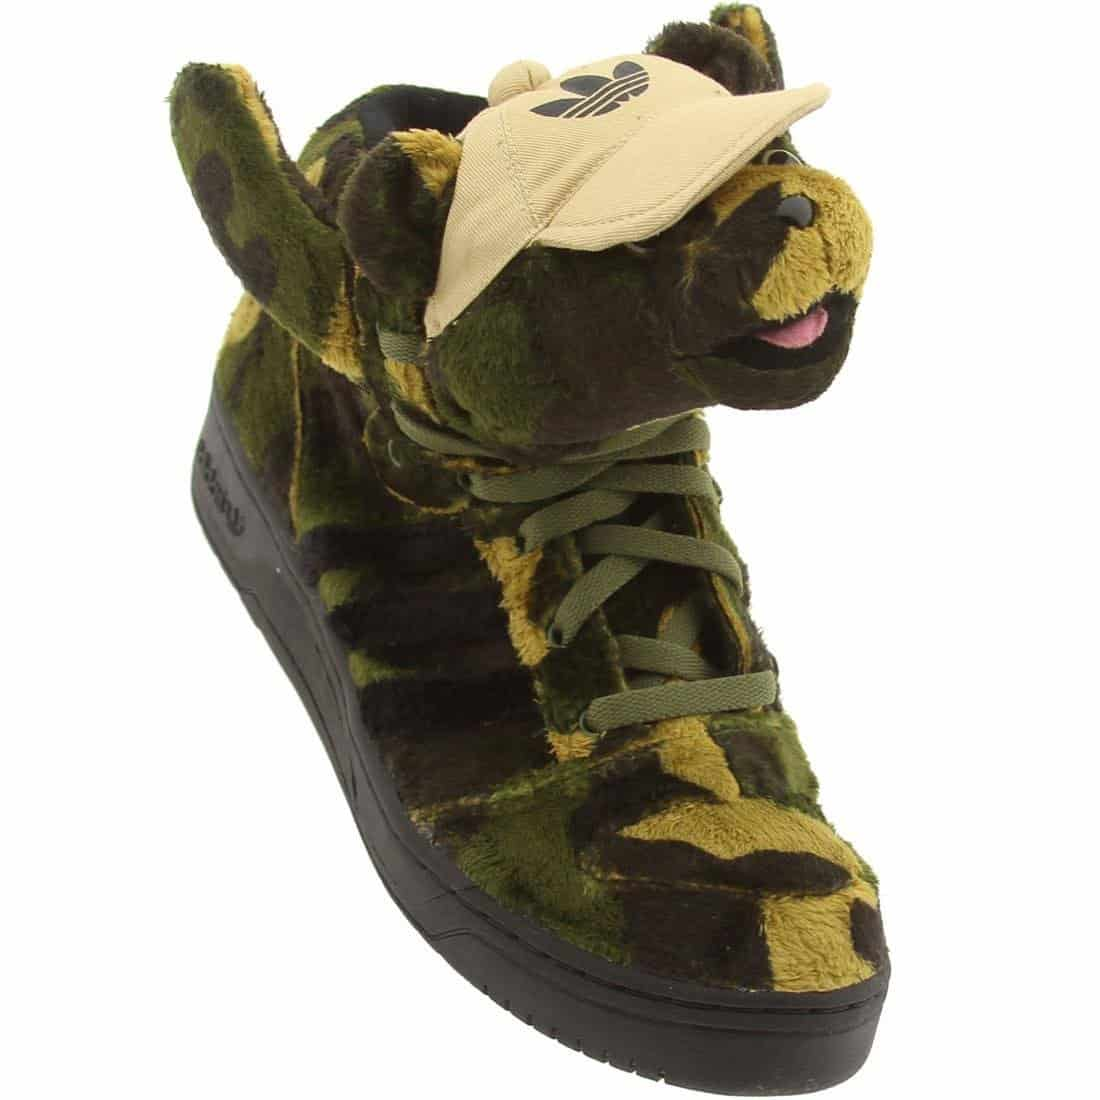 Adidas Jeremy Scott Camo Bear Sneakers Cool Stuff to Buy for Her